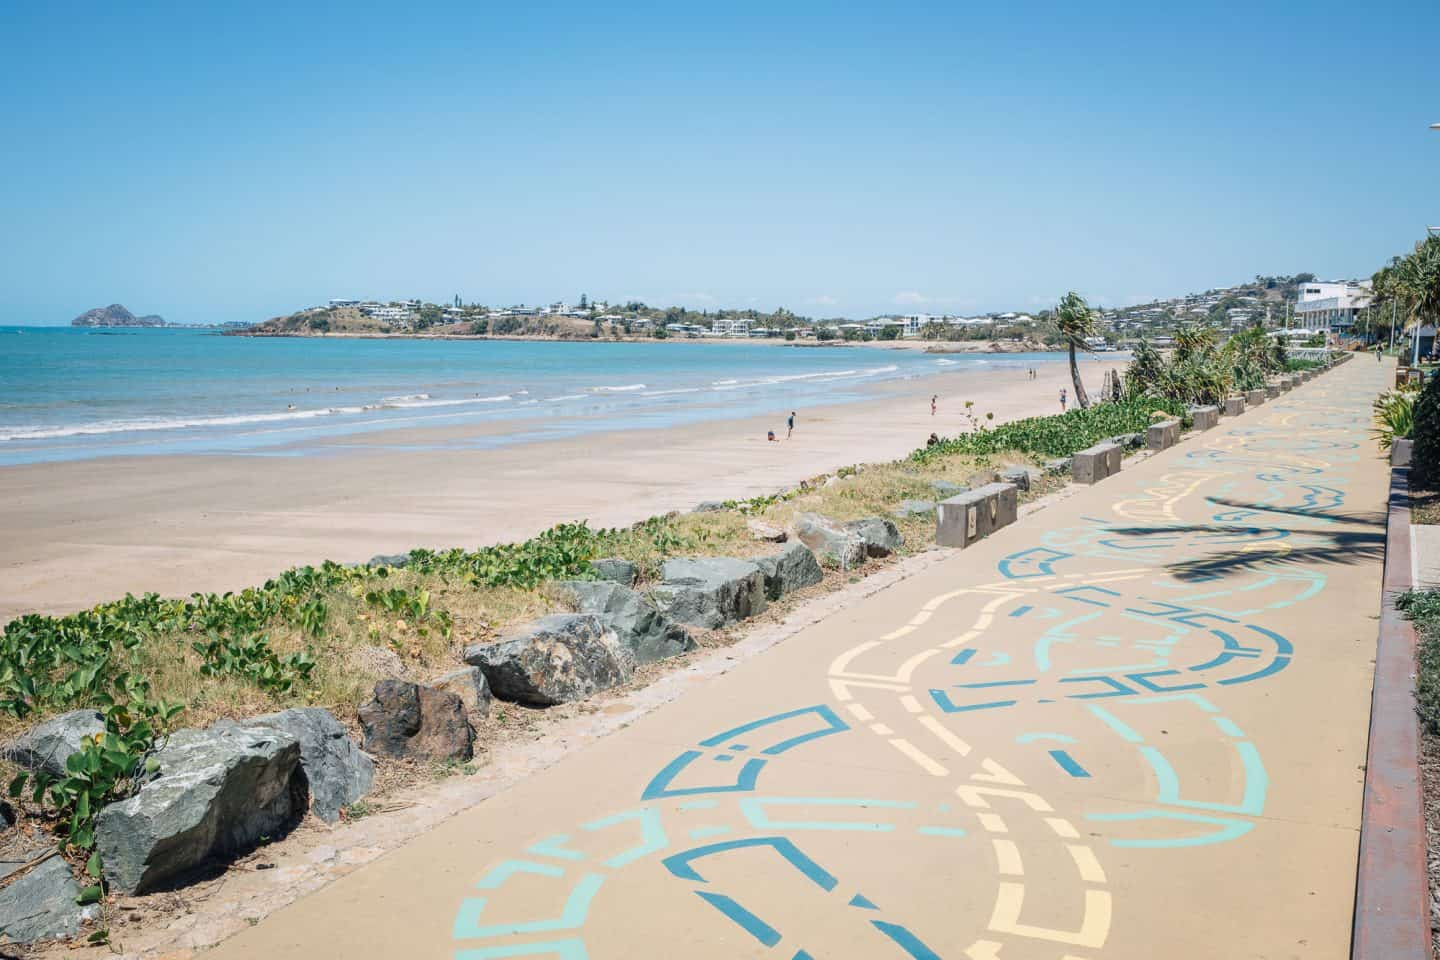 yeppoon beaches, beaches yeppoon, best beaches in yeppoon, beaches in yeppoon, yeppoon main beach